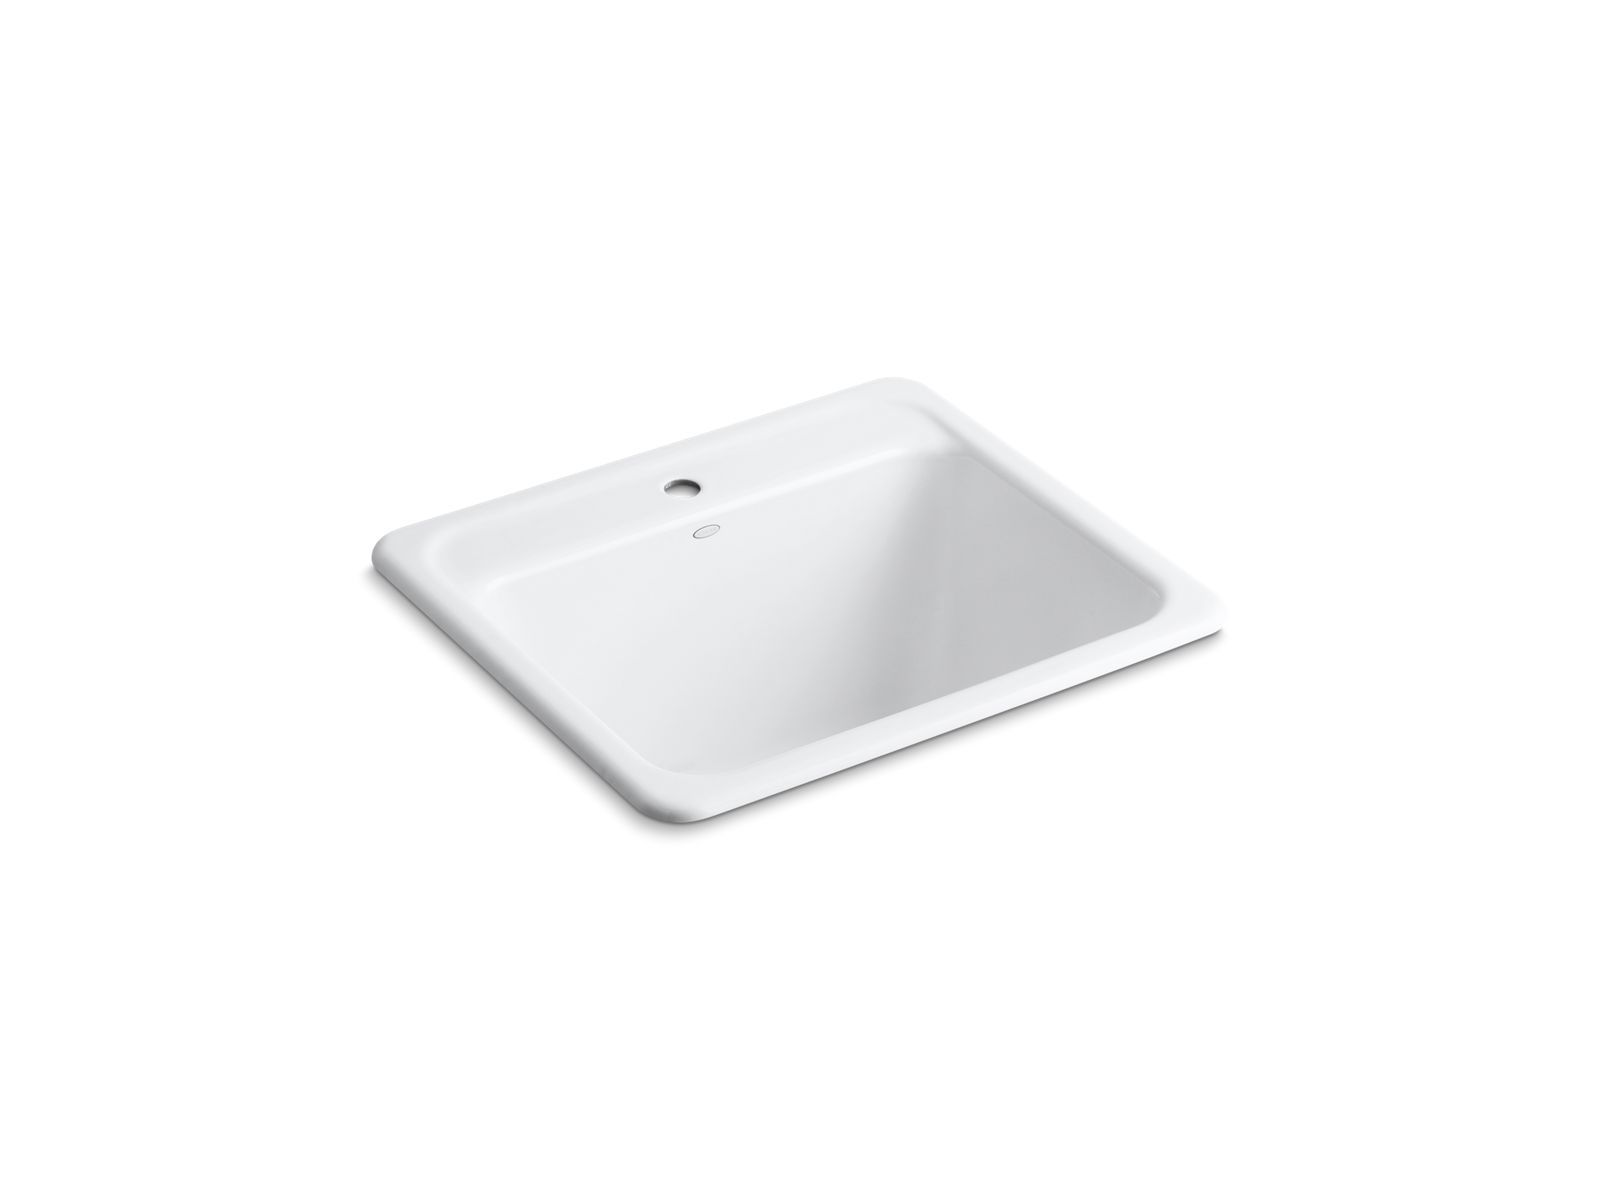 "Glen Falls 25"" x 22"" x 13-5/8"" Top-/Under-Mount Utility Sink with Single Faucet Hole"